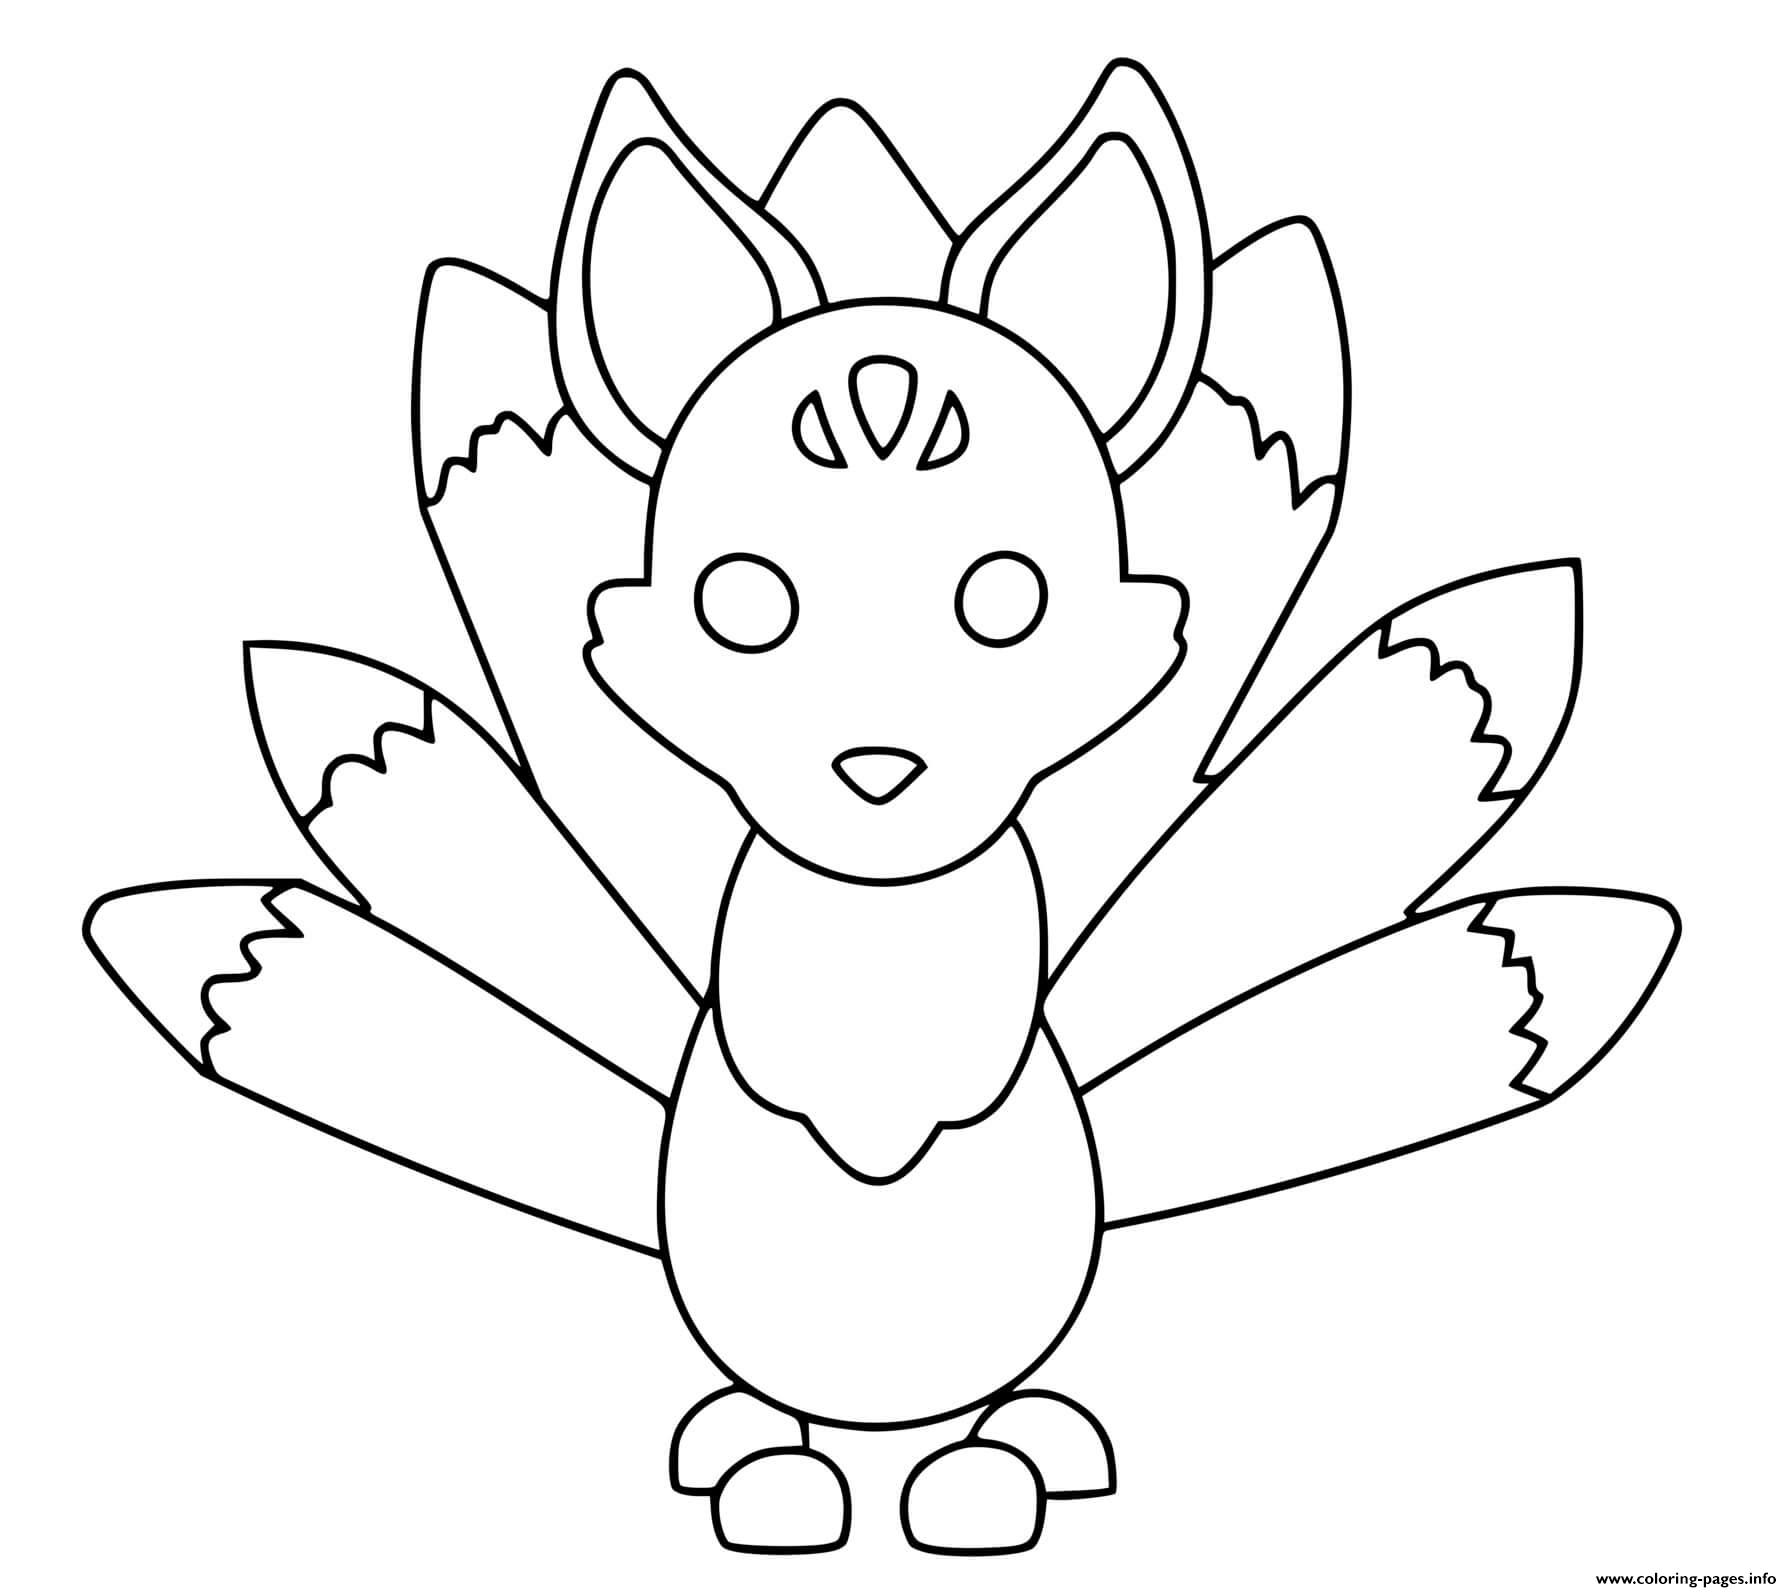 Adopt Me Twitter Coloring Pages / Adopt Me Coloring Pages ...